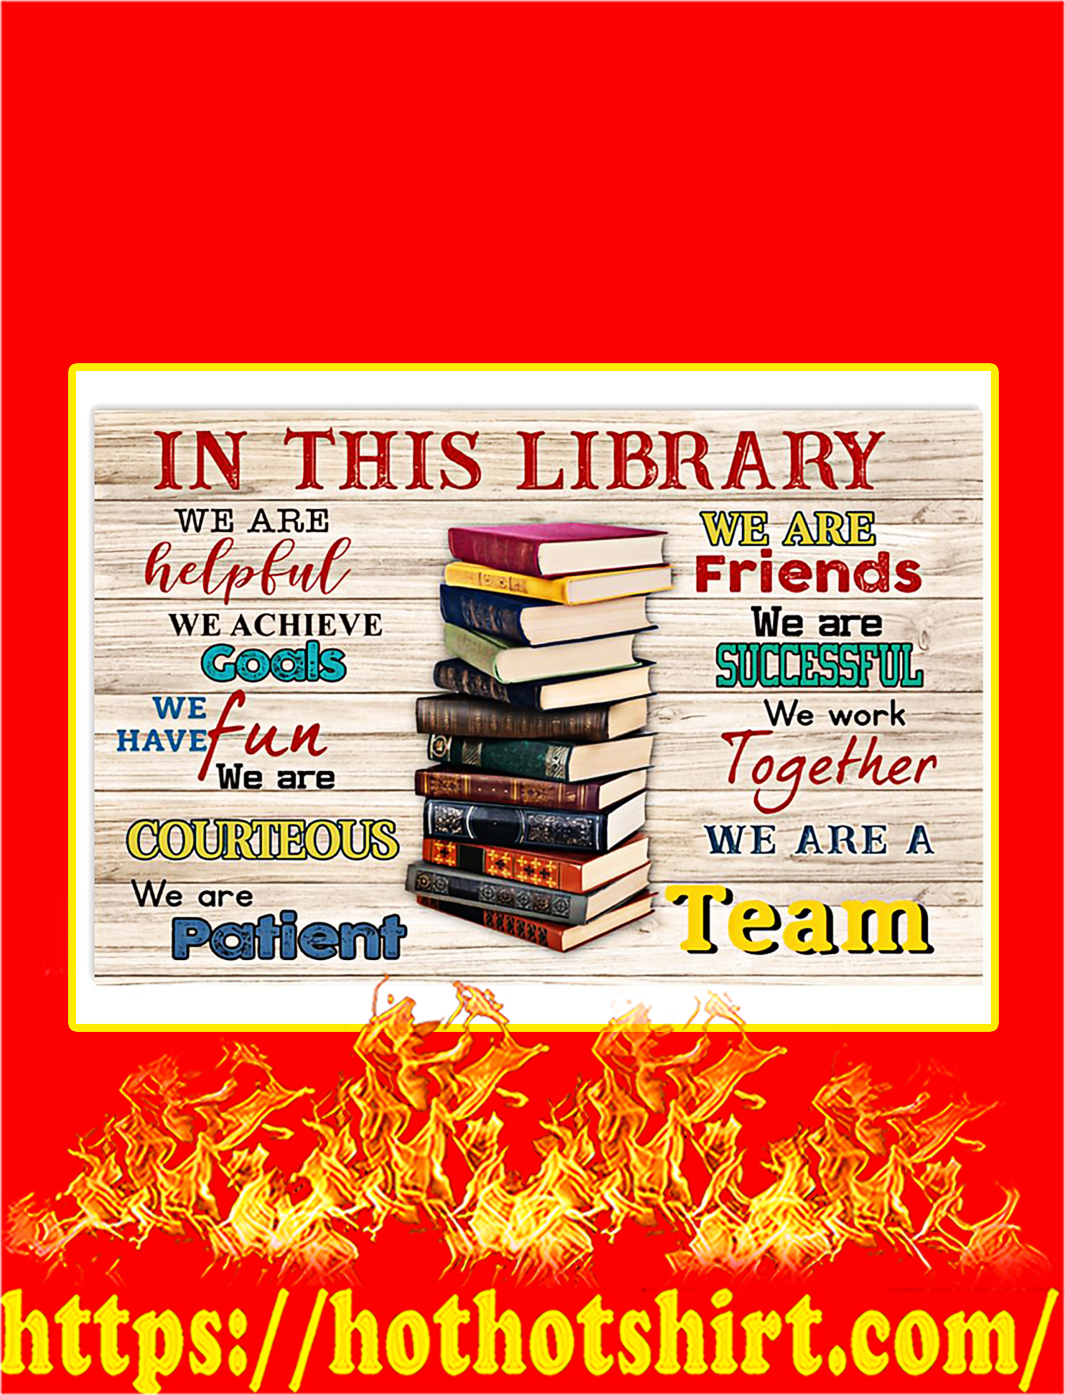 In this library we are a team poster - A2